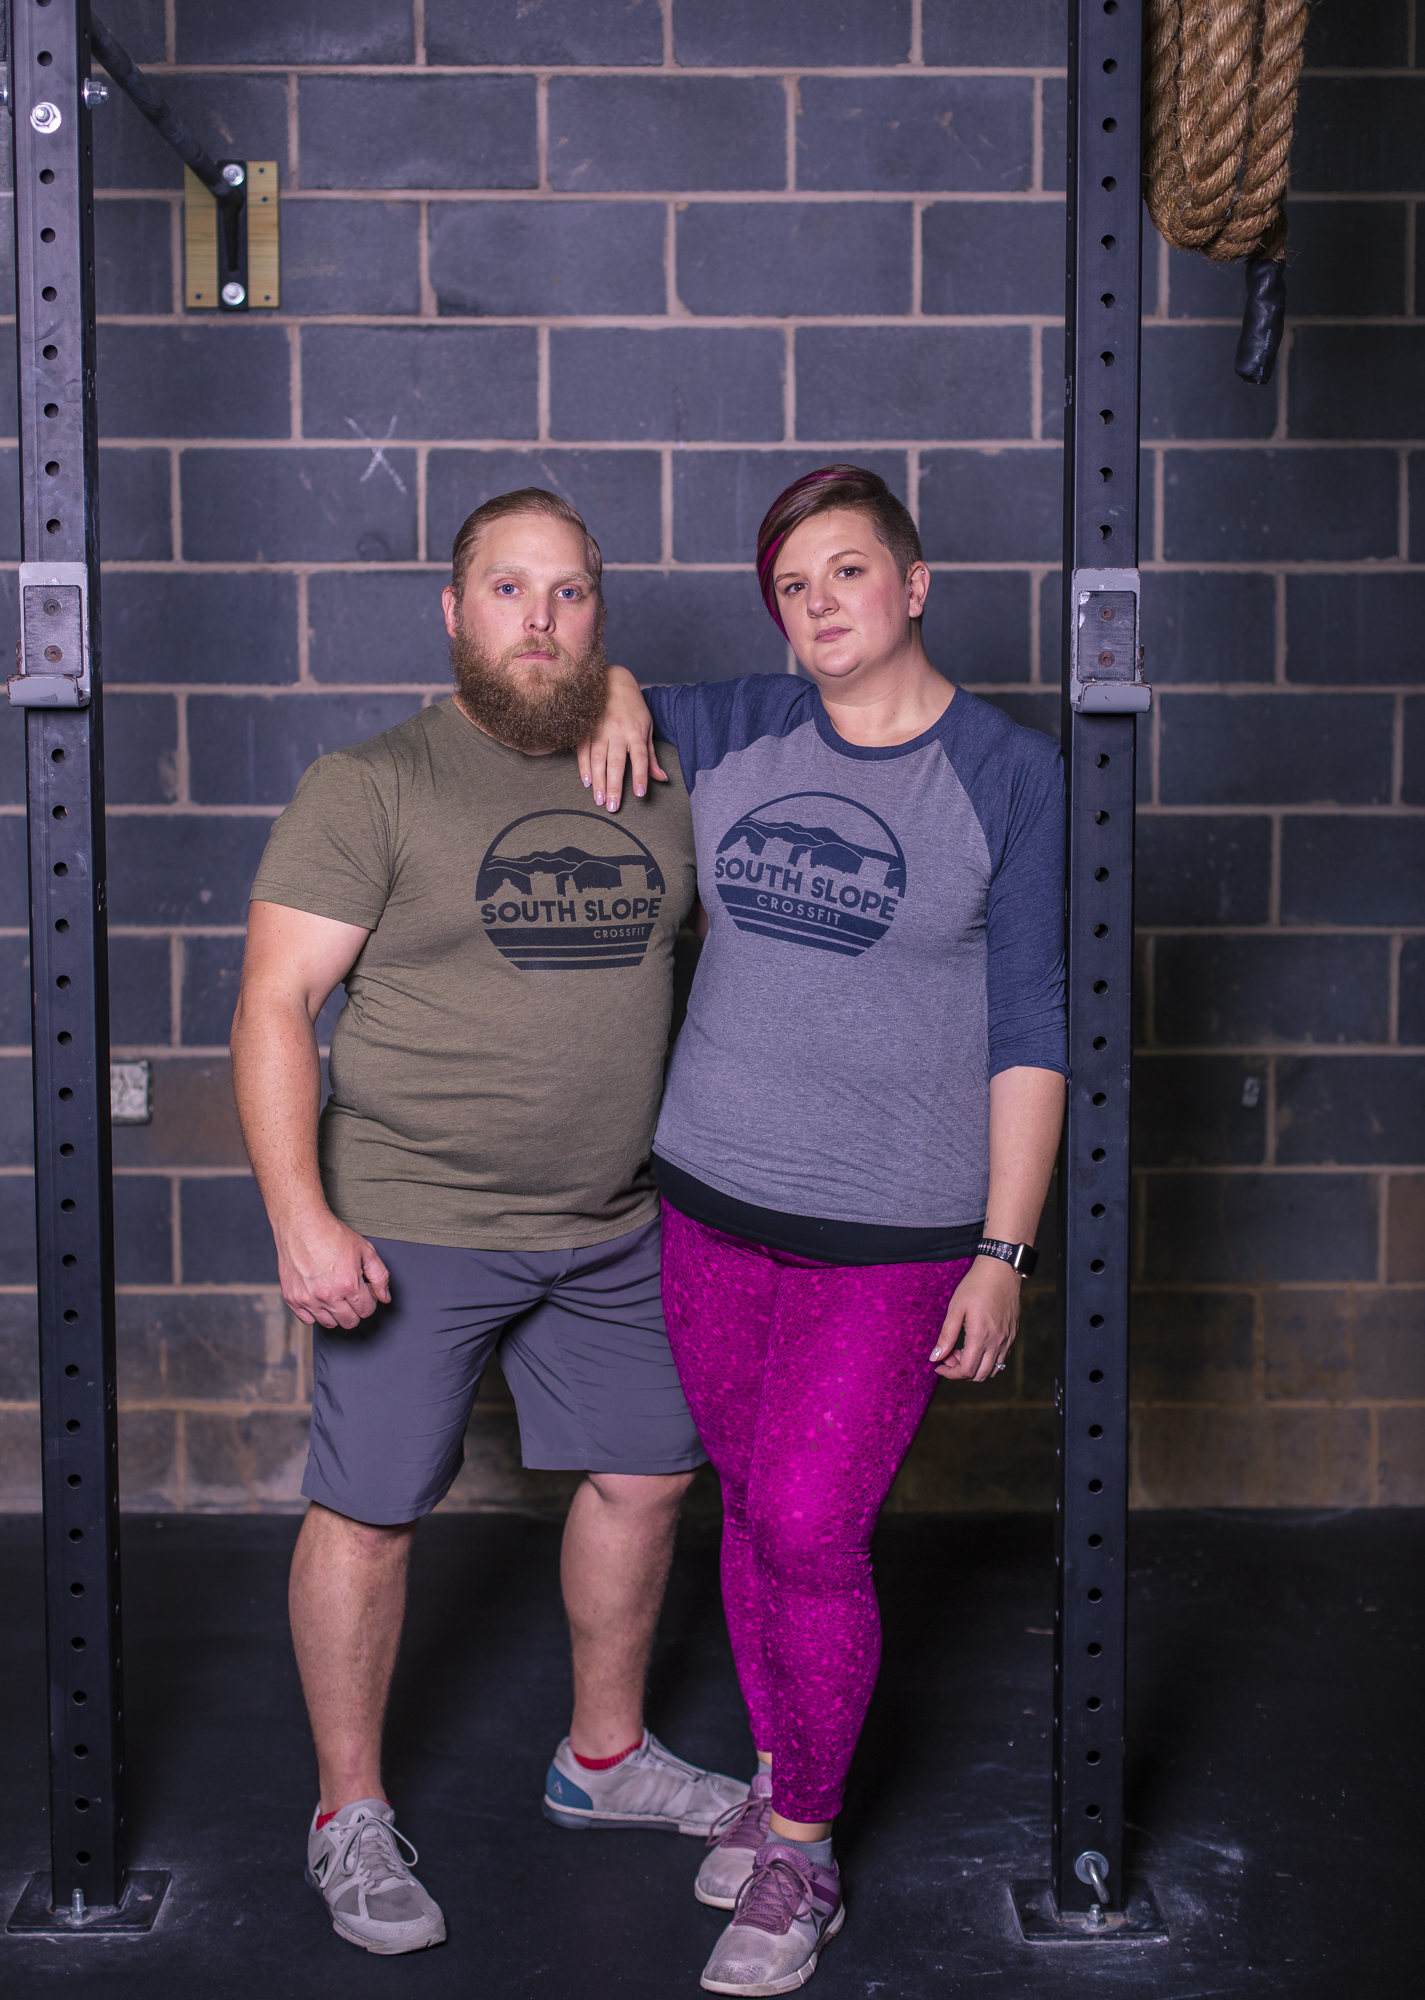 Jessica and Derek Gym Engagement Photos_by Studio Misha Photography_BLOG-88.jpg